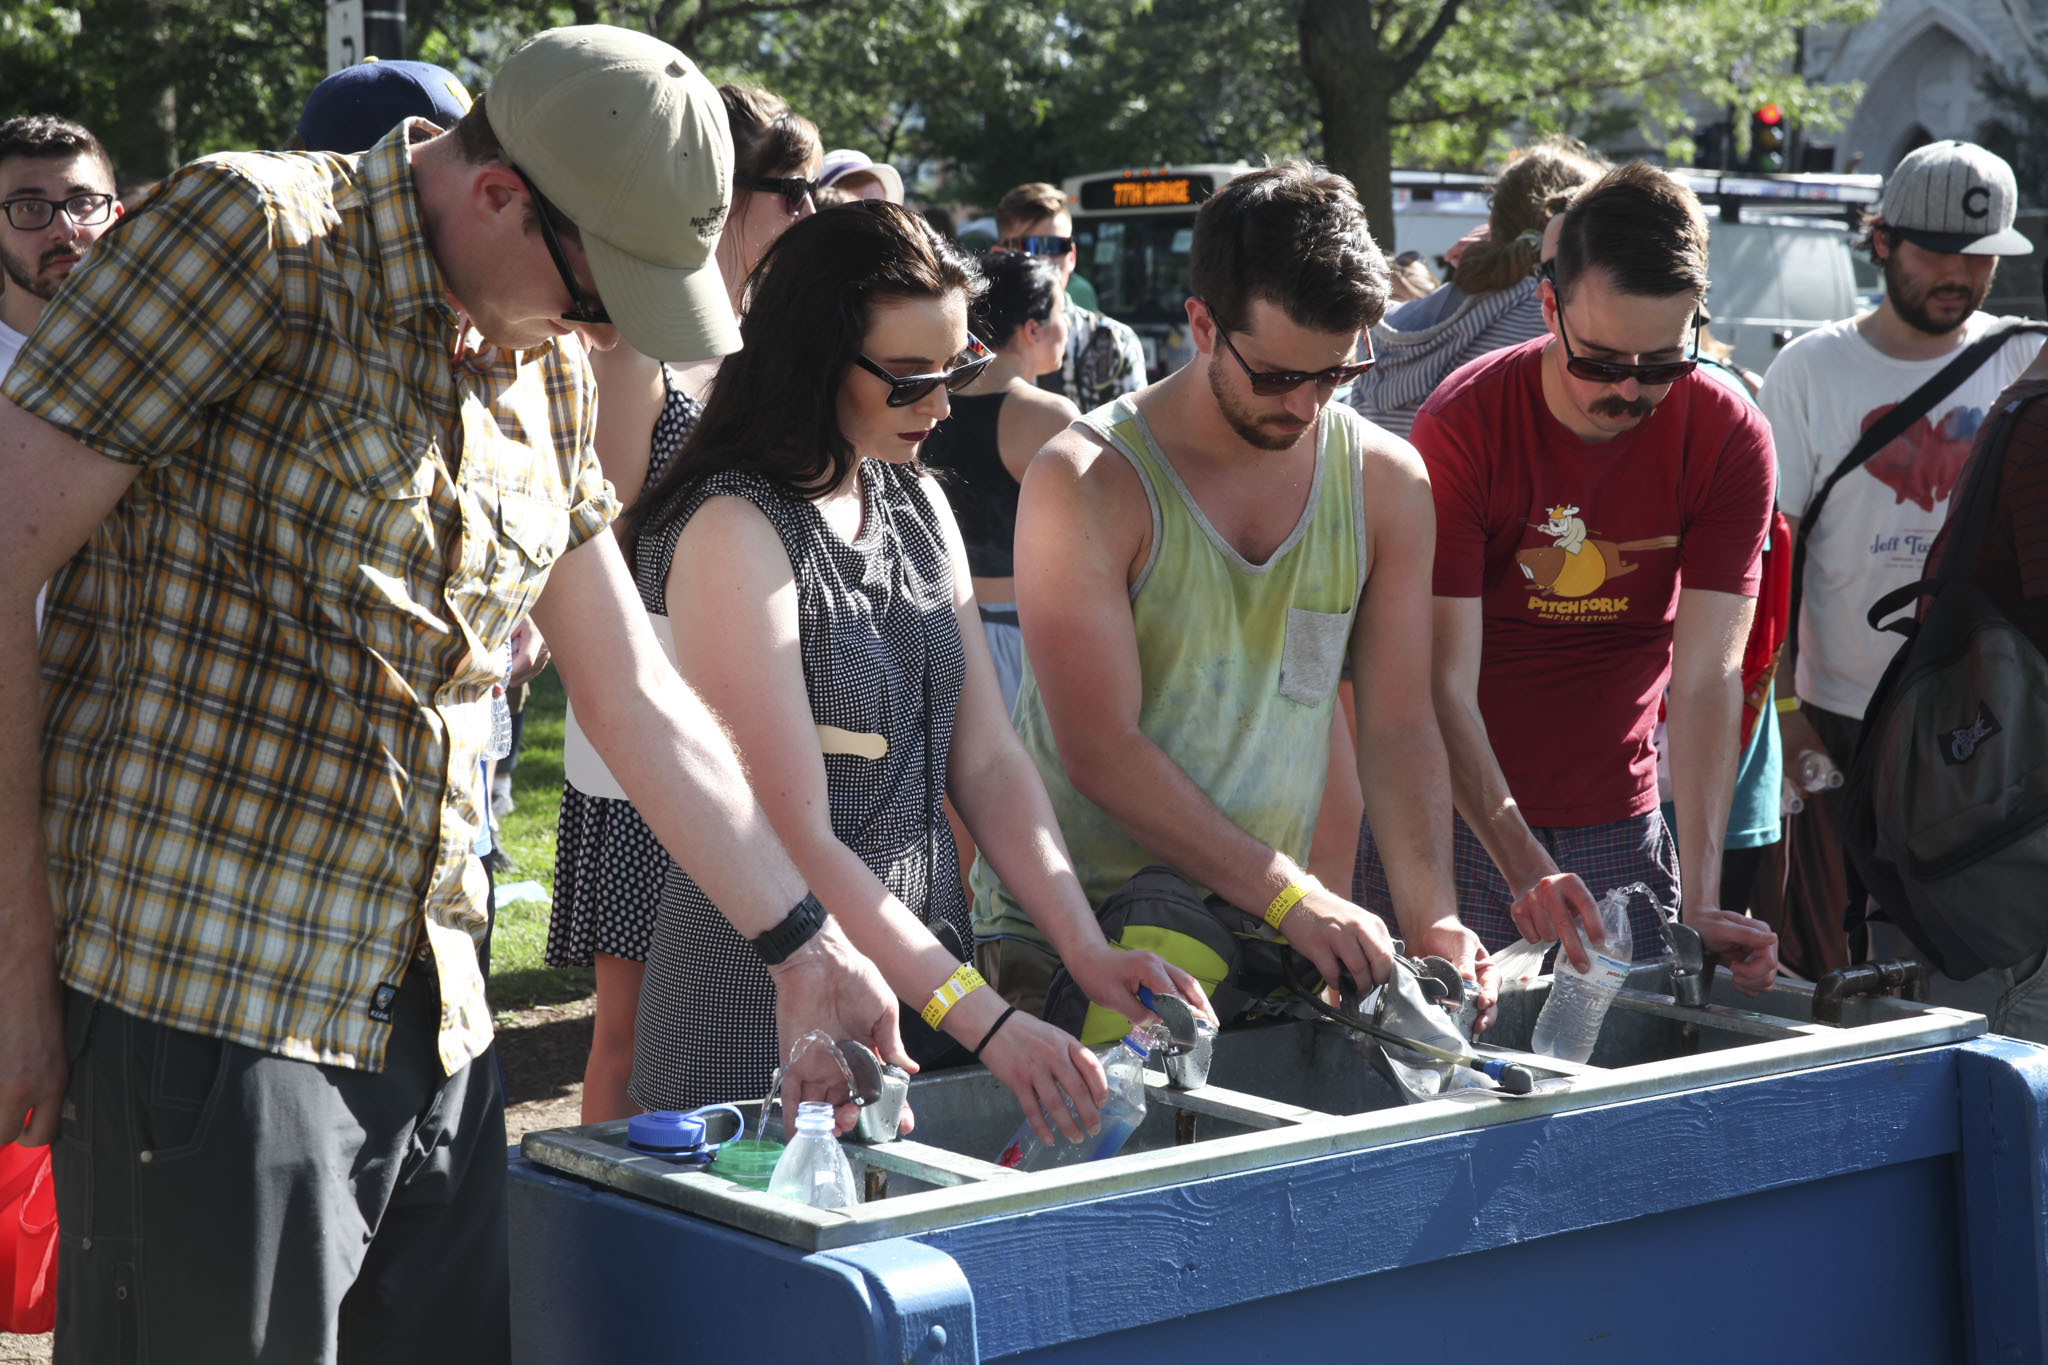 Crowds flocked to Union Park on Friday afternoon for the first day of Pitchfork Music Festival, July 17, 2015.